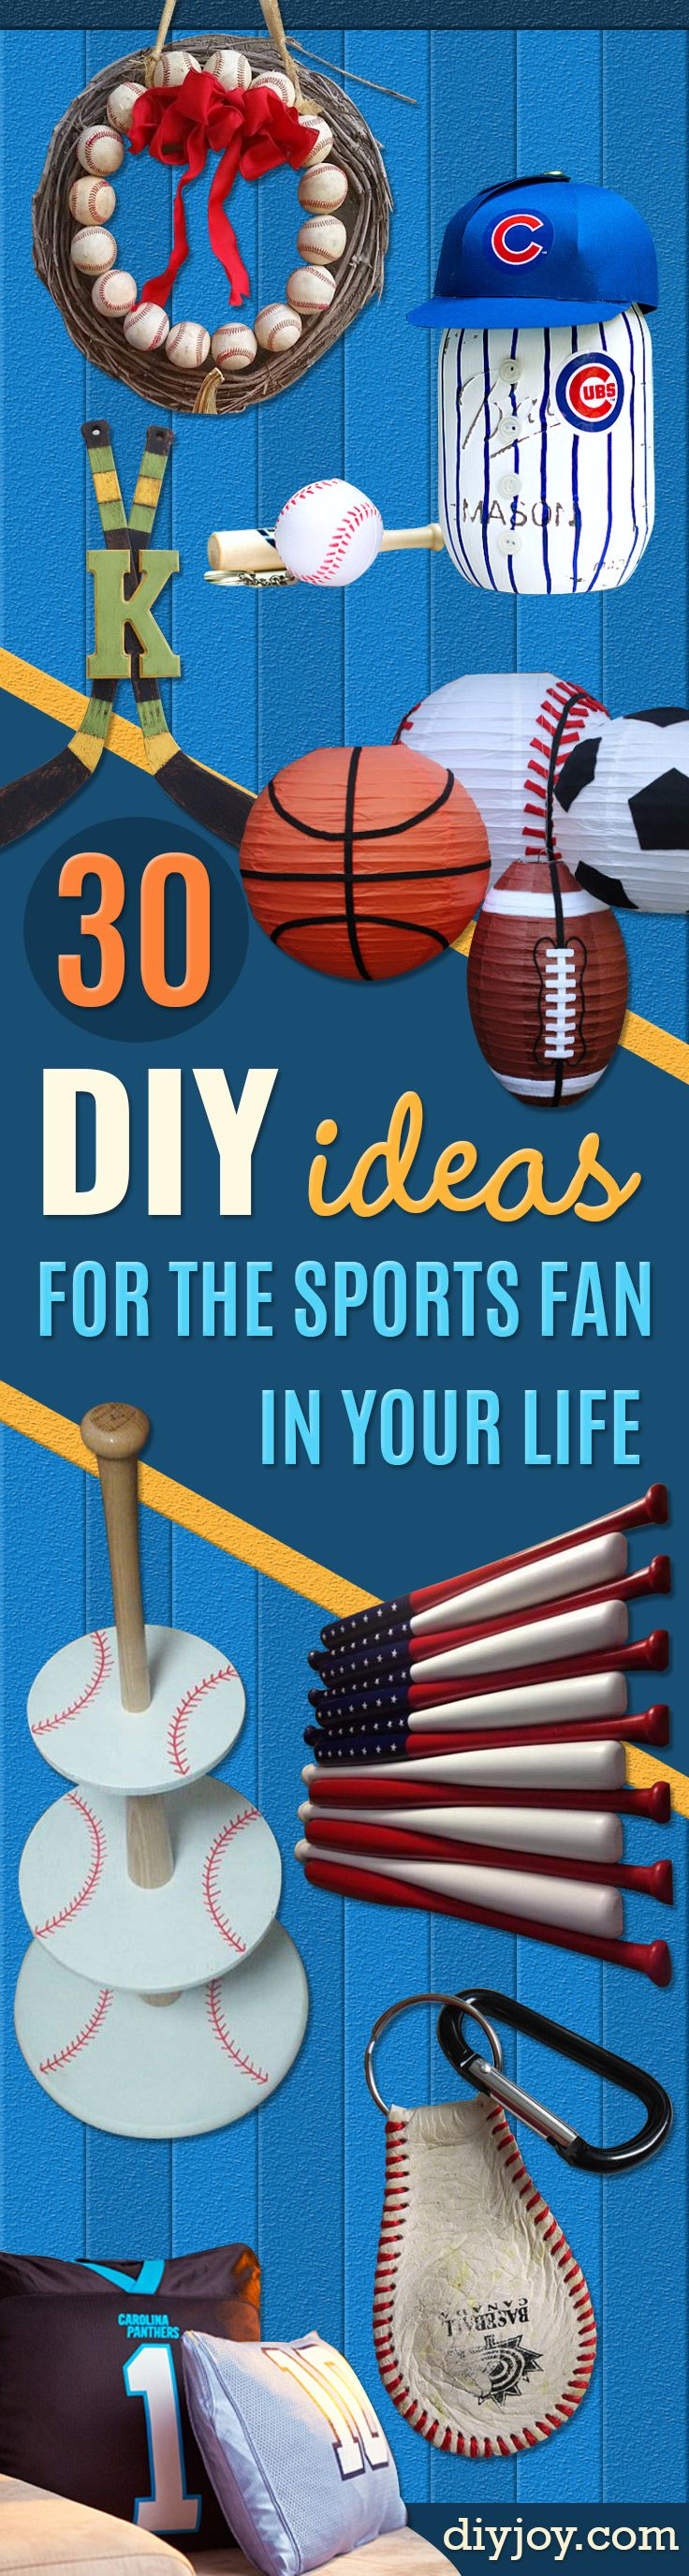 DIY Projects for the Sports Fan - Crafts and DIY Ideas for Men - Football, Baseball, Basketball, Soccer and Golf - Wall Art, DIY Gifts, Easy Gift Ideas, Room and Home Decor http://diyjoy.com/diy-ideas-sports-fan